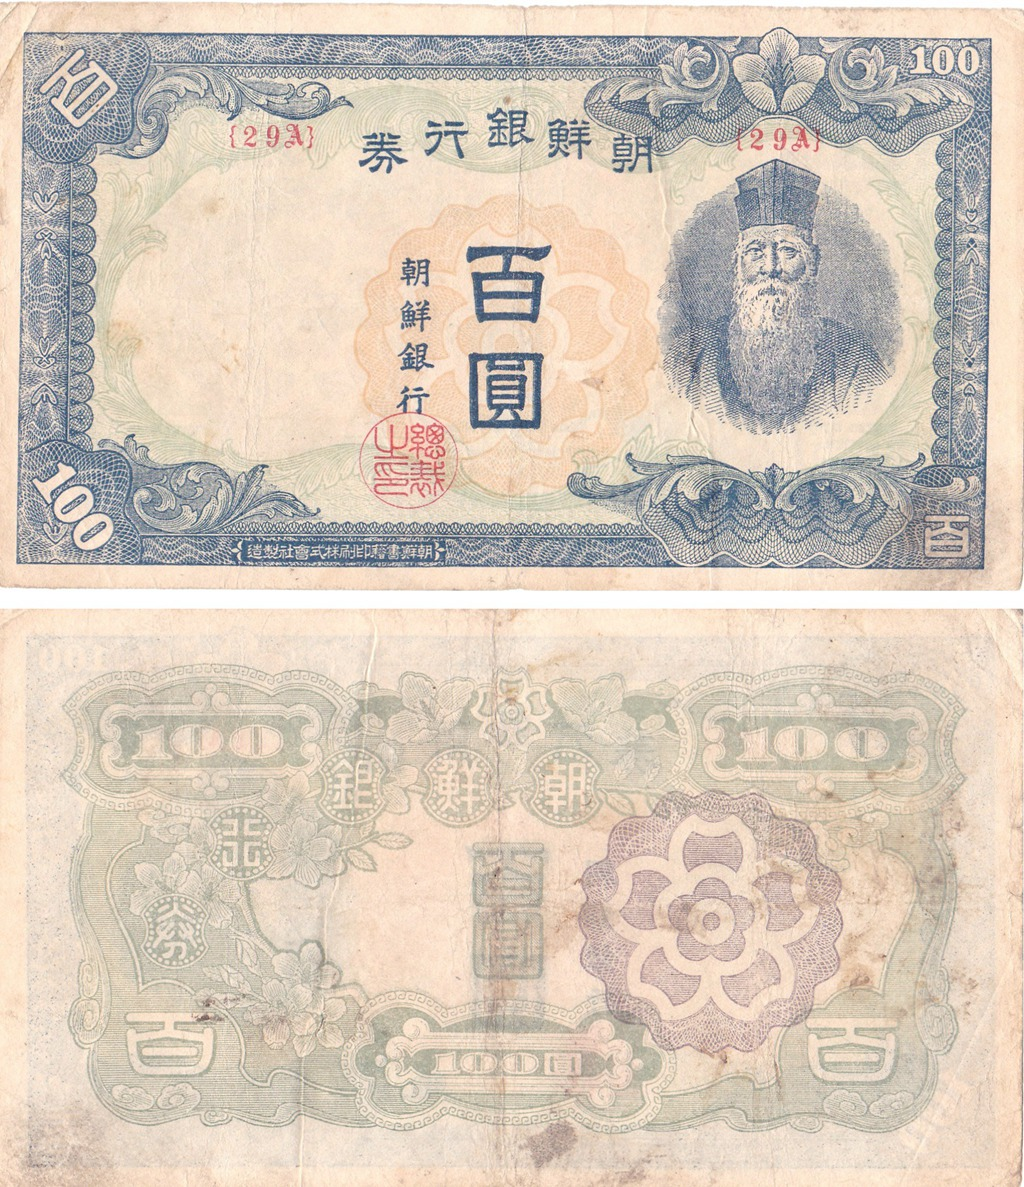 L1040, Bank of Korea (Chosen), 100 Won (Yen), 1947 Issue P-46